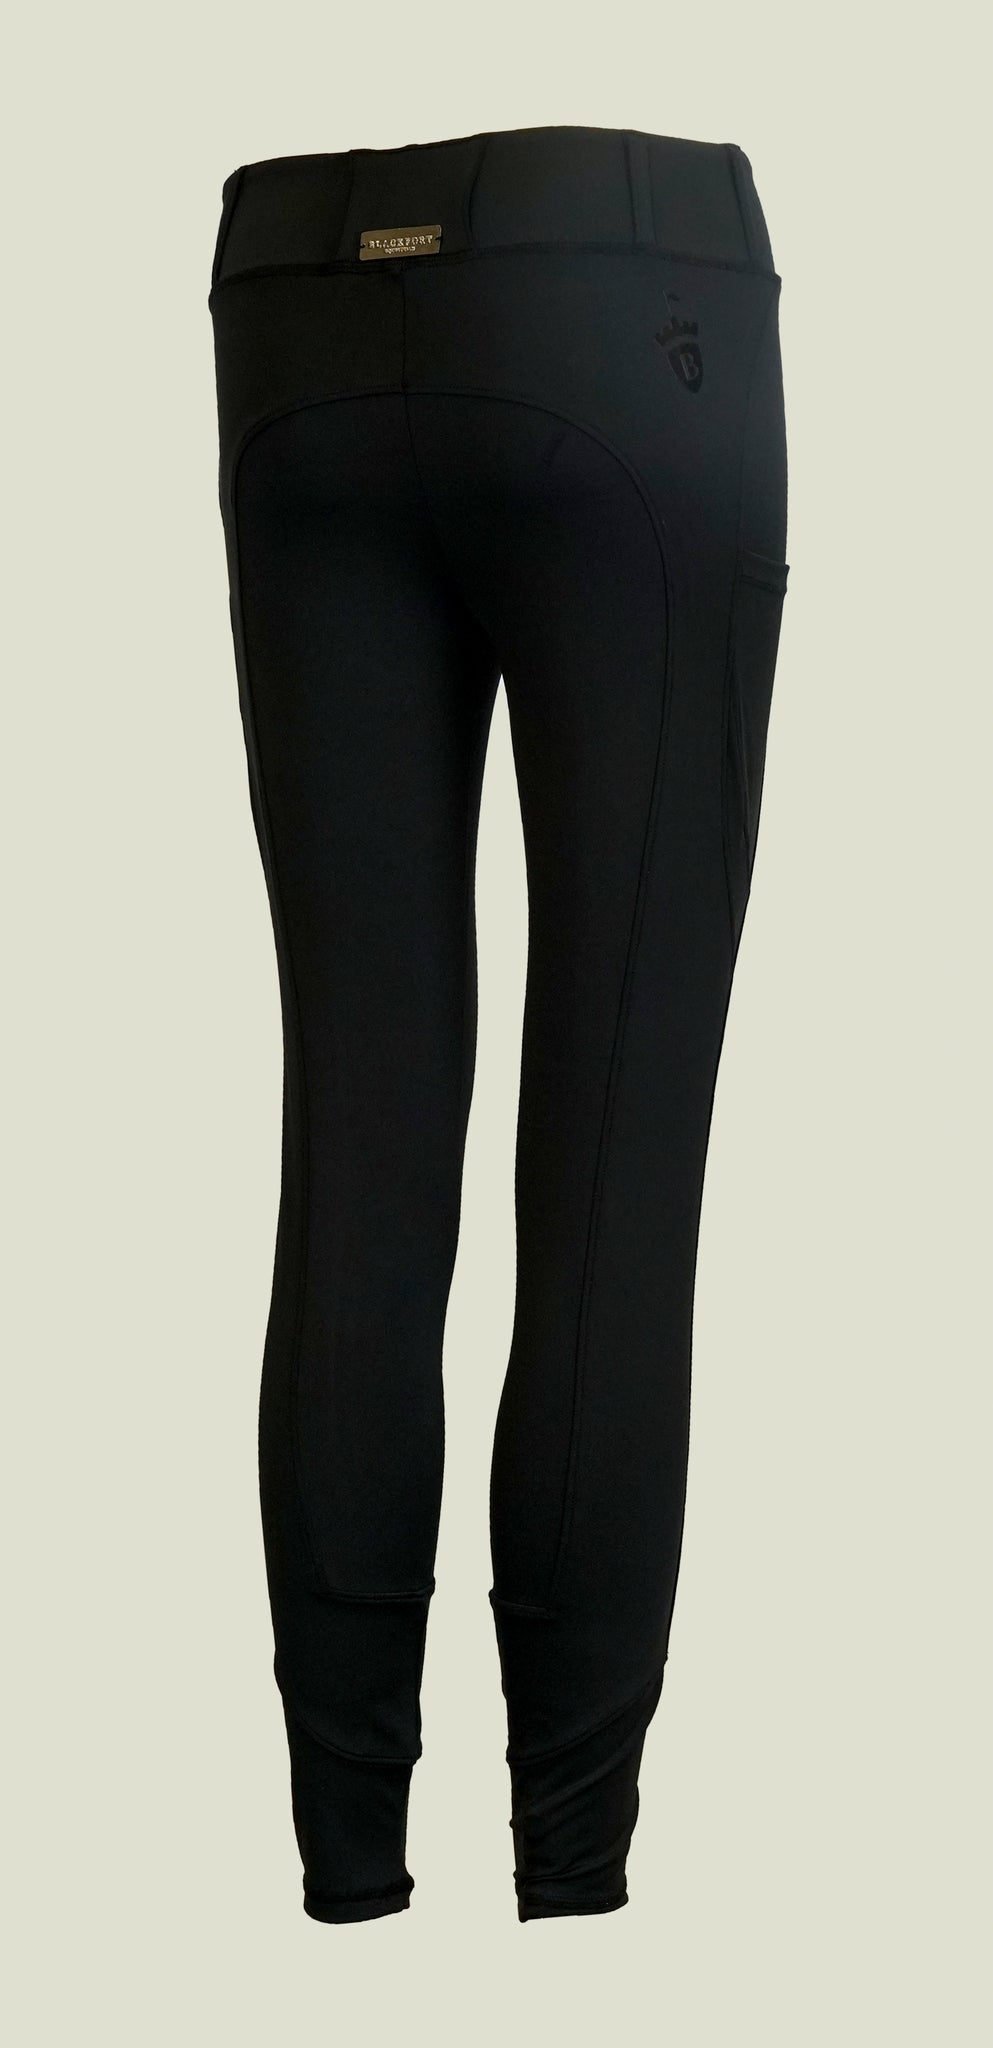 Blackfort Equestrian Riding Leggings with no silicone seat in navy with phone pocket